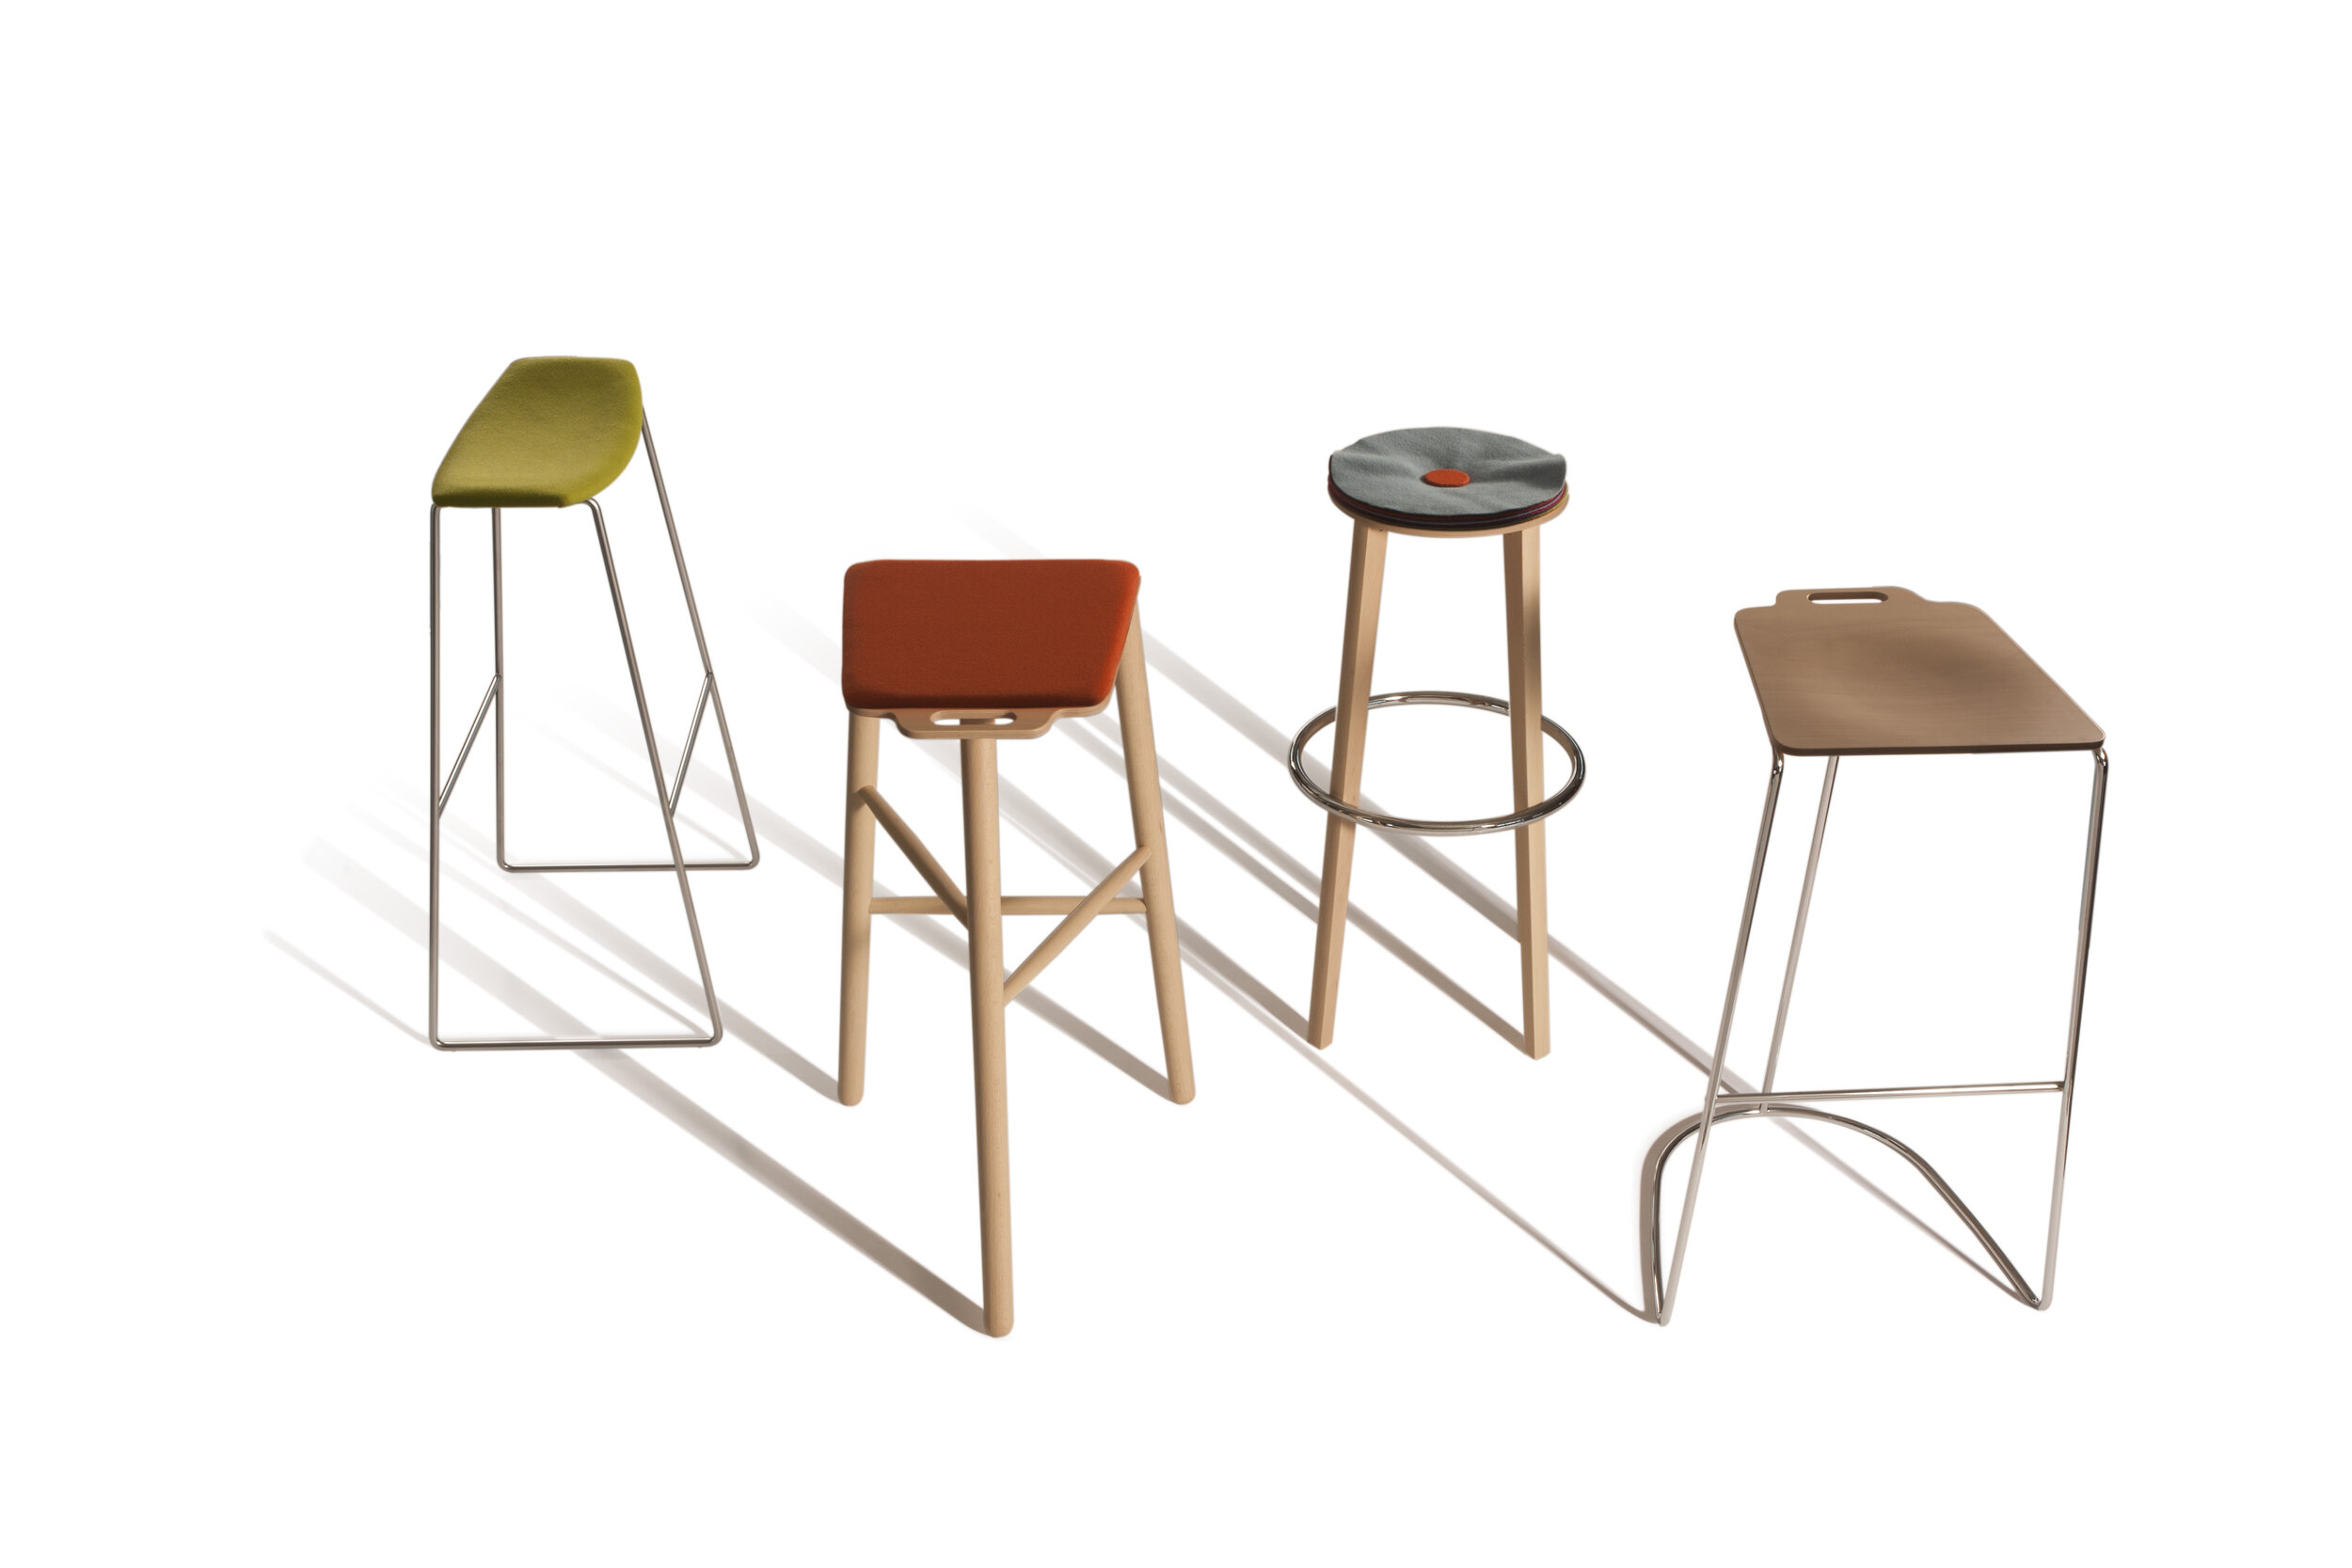 Tic Tac Toe Stools,  starting at $449 List Each